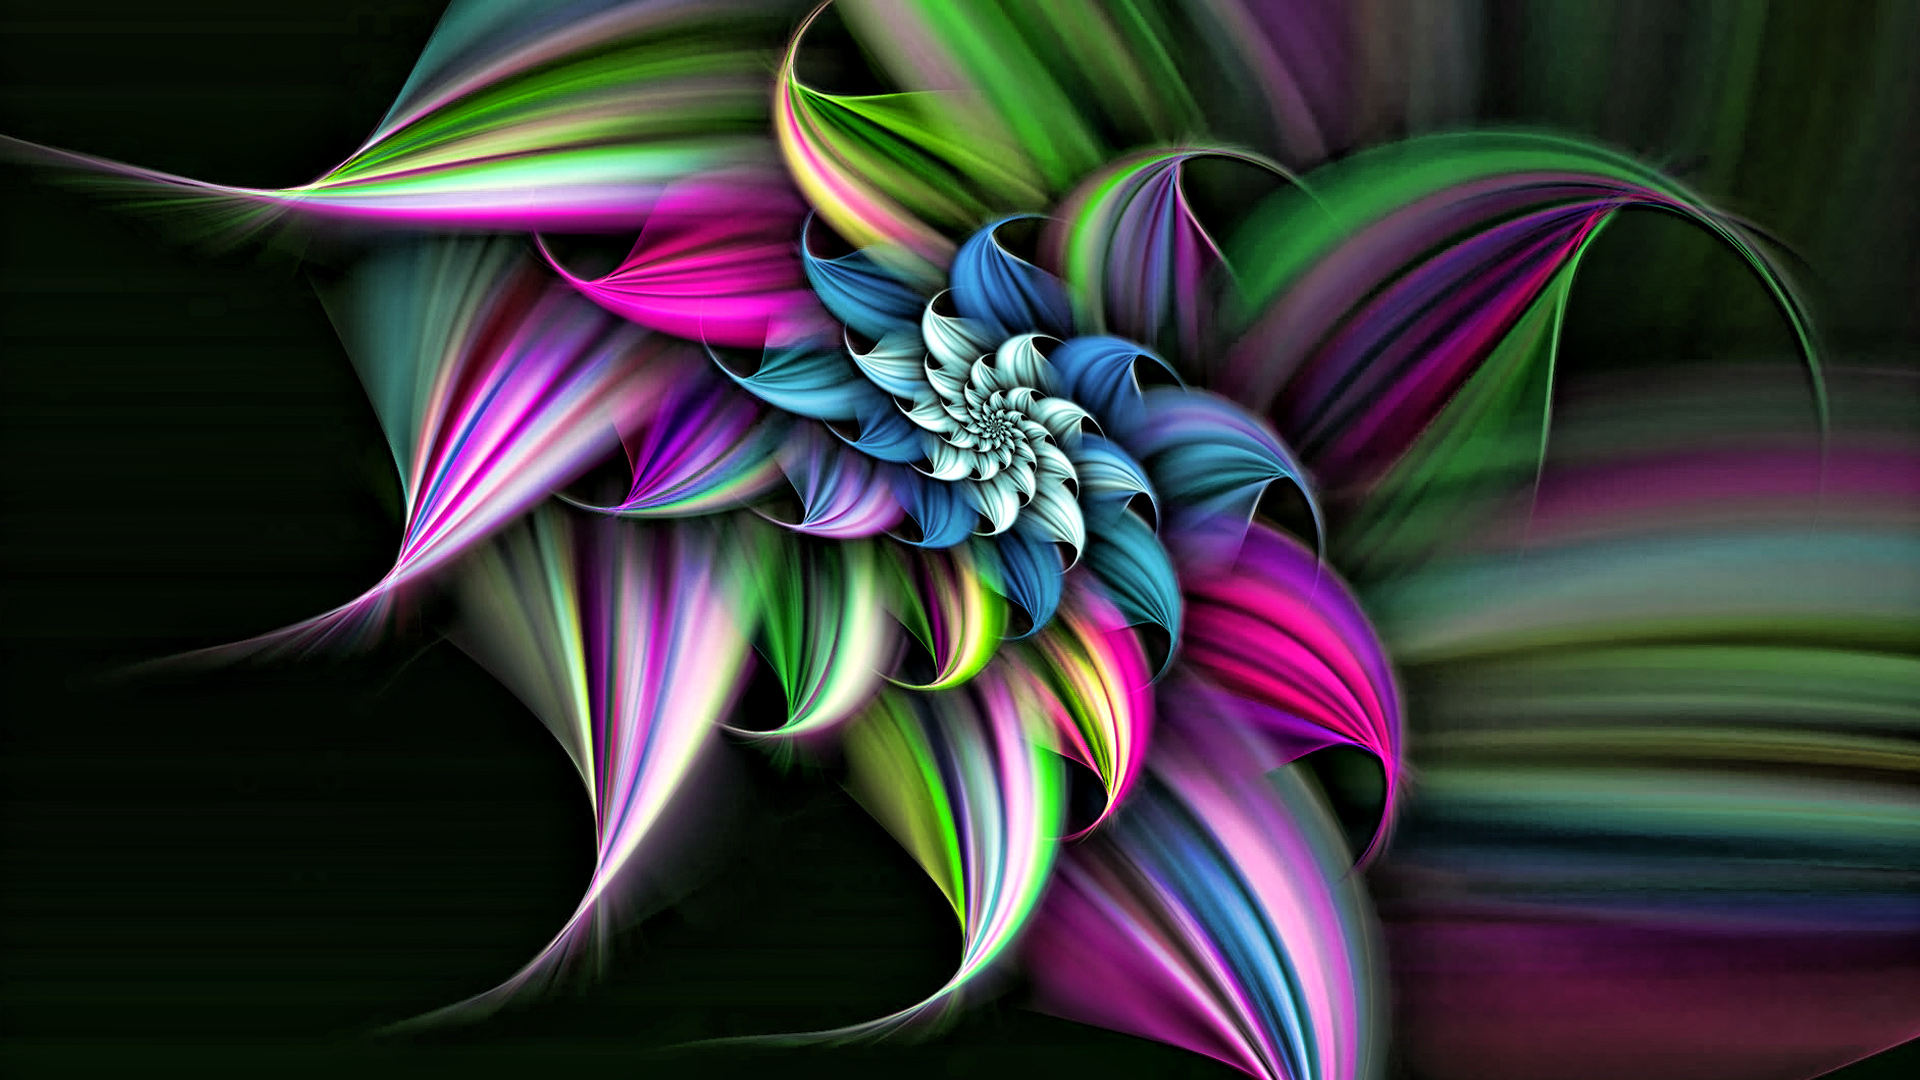 3D Images Rainbow Flower Wallpapers | Free Download Wallpaper